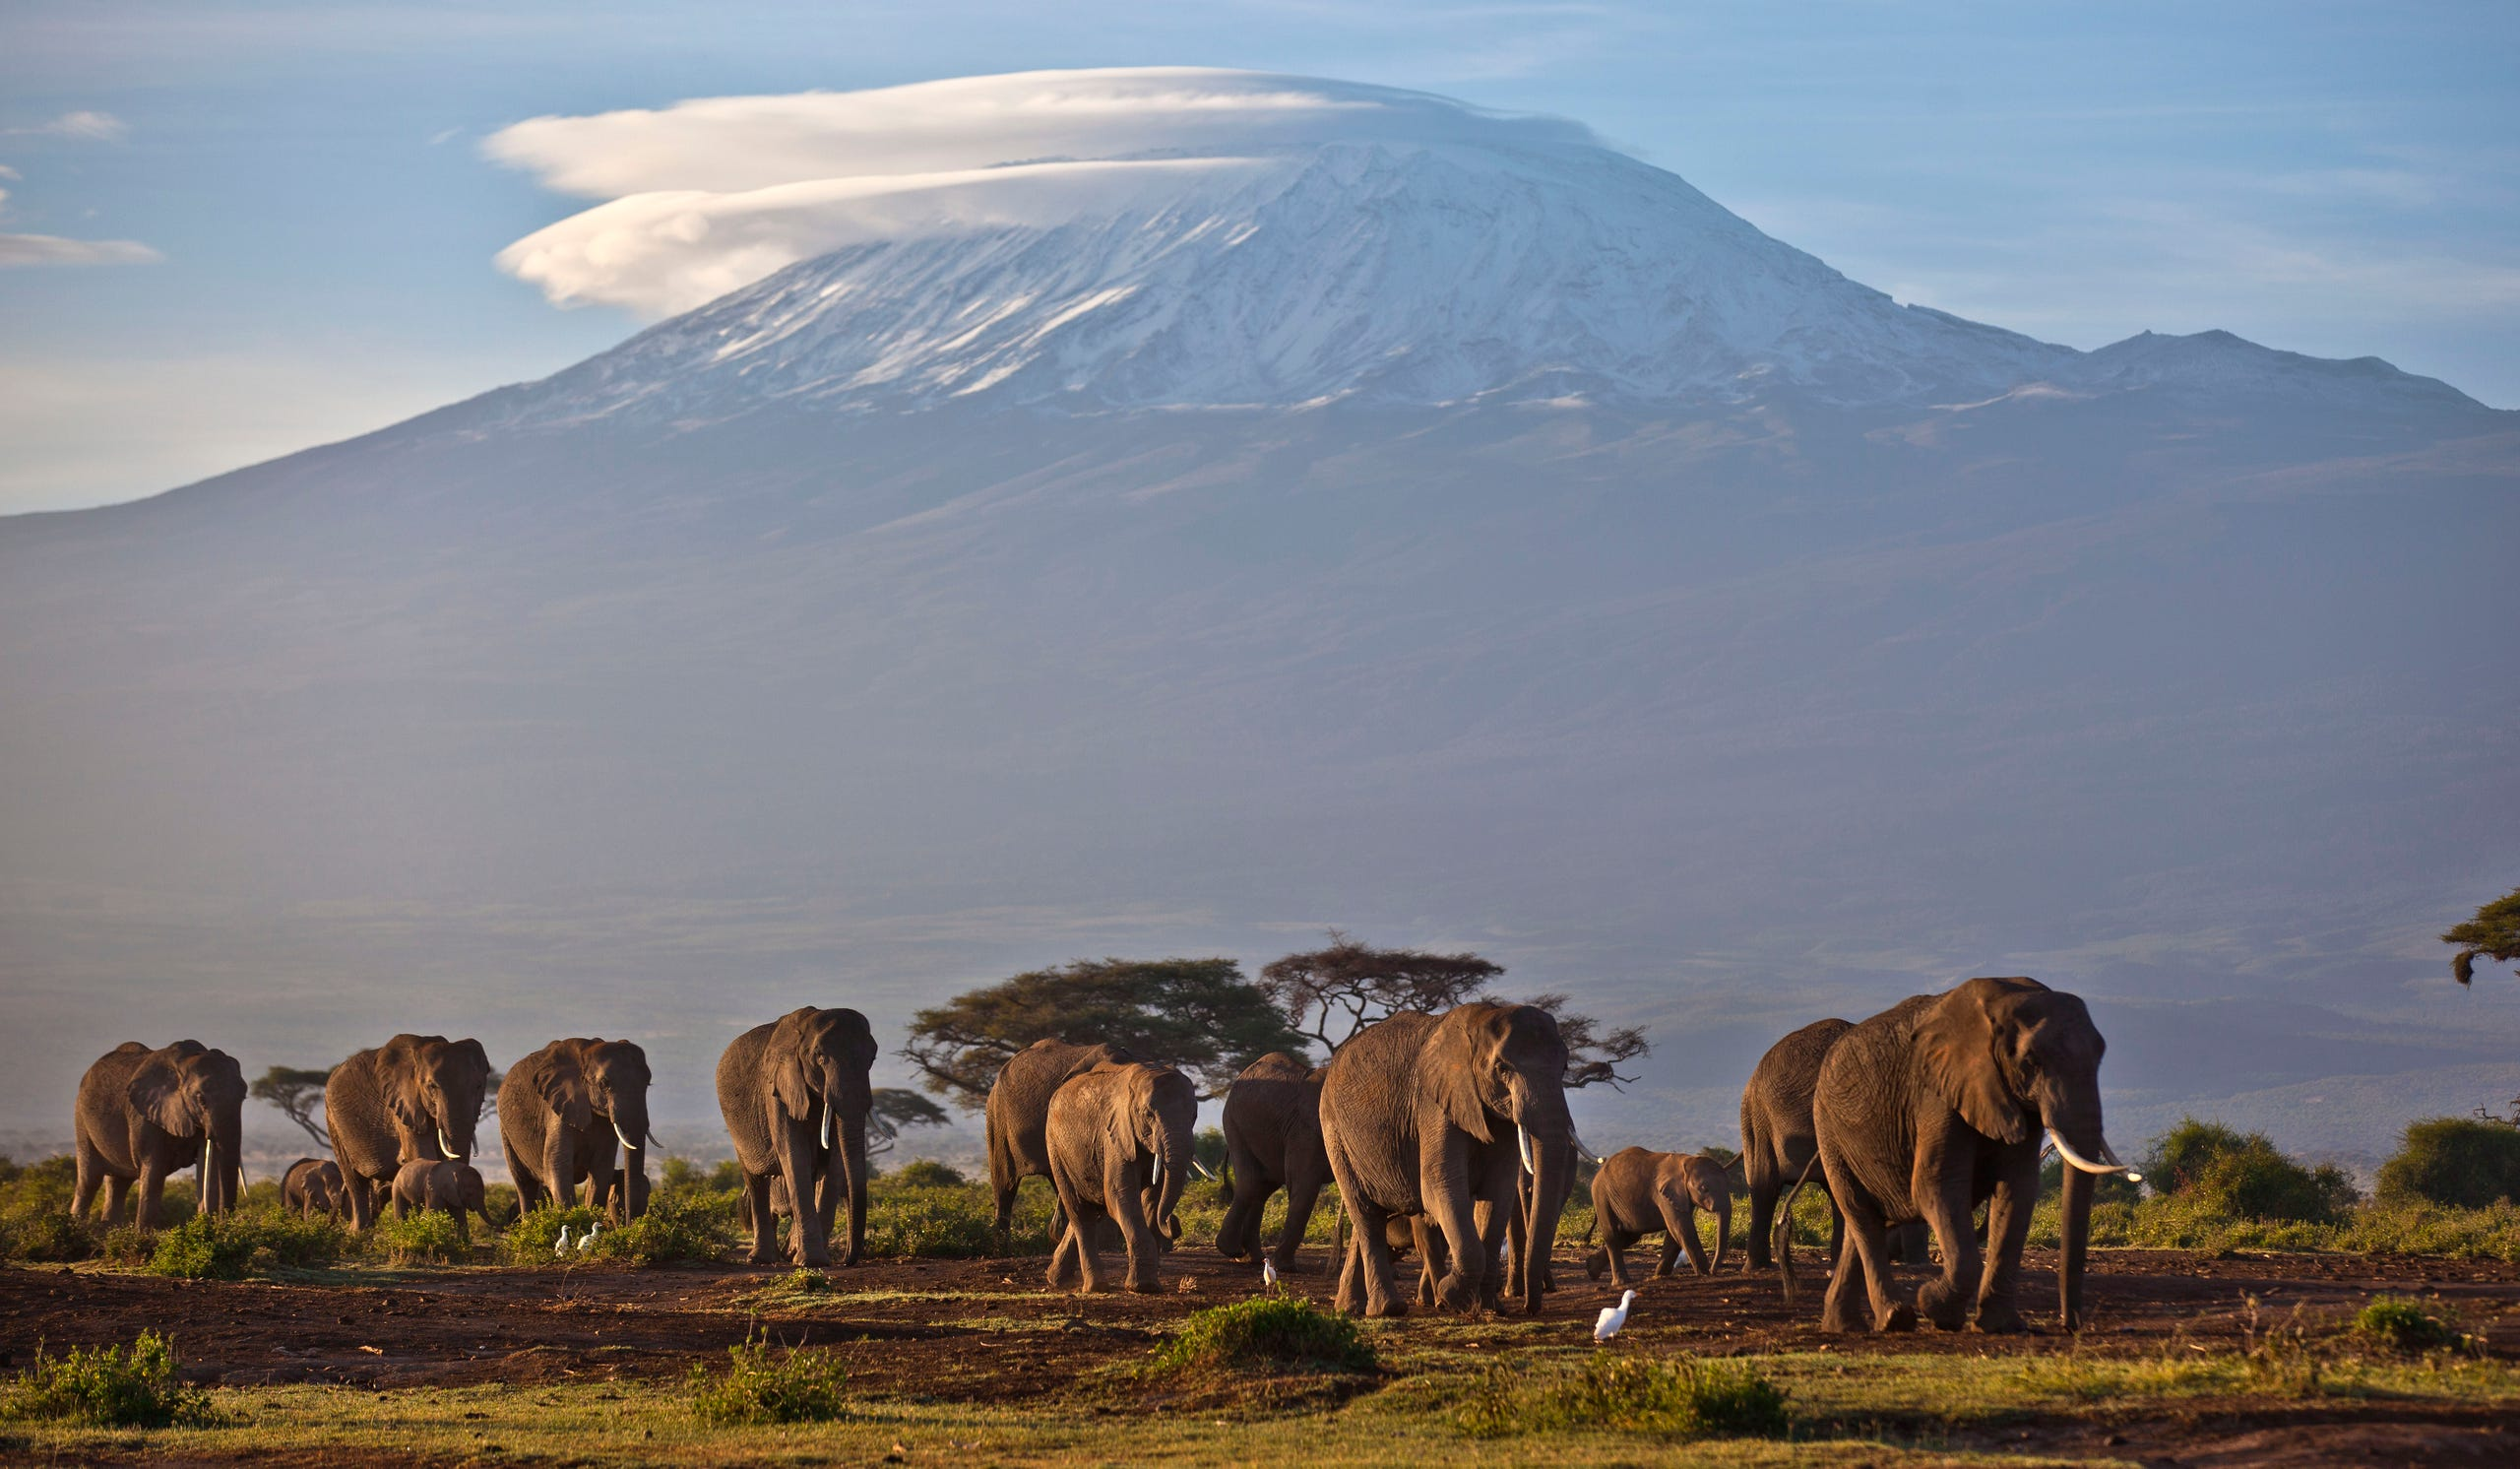 FILE - In this Monday, Dec. 17, 2012 file photo, A herd of adult and baby elephants walks in the dawn light in 2012 as the highest mountain in Africa, Mount Kilimanjaro in Tanzania, sits topped with snow in the background, seen from Amboseli National Park in southern Kenya. The glaciers on top of the mountain is one of three expecting to disappear in the next two decades.